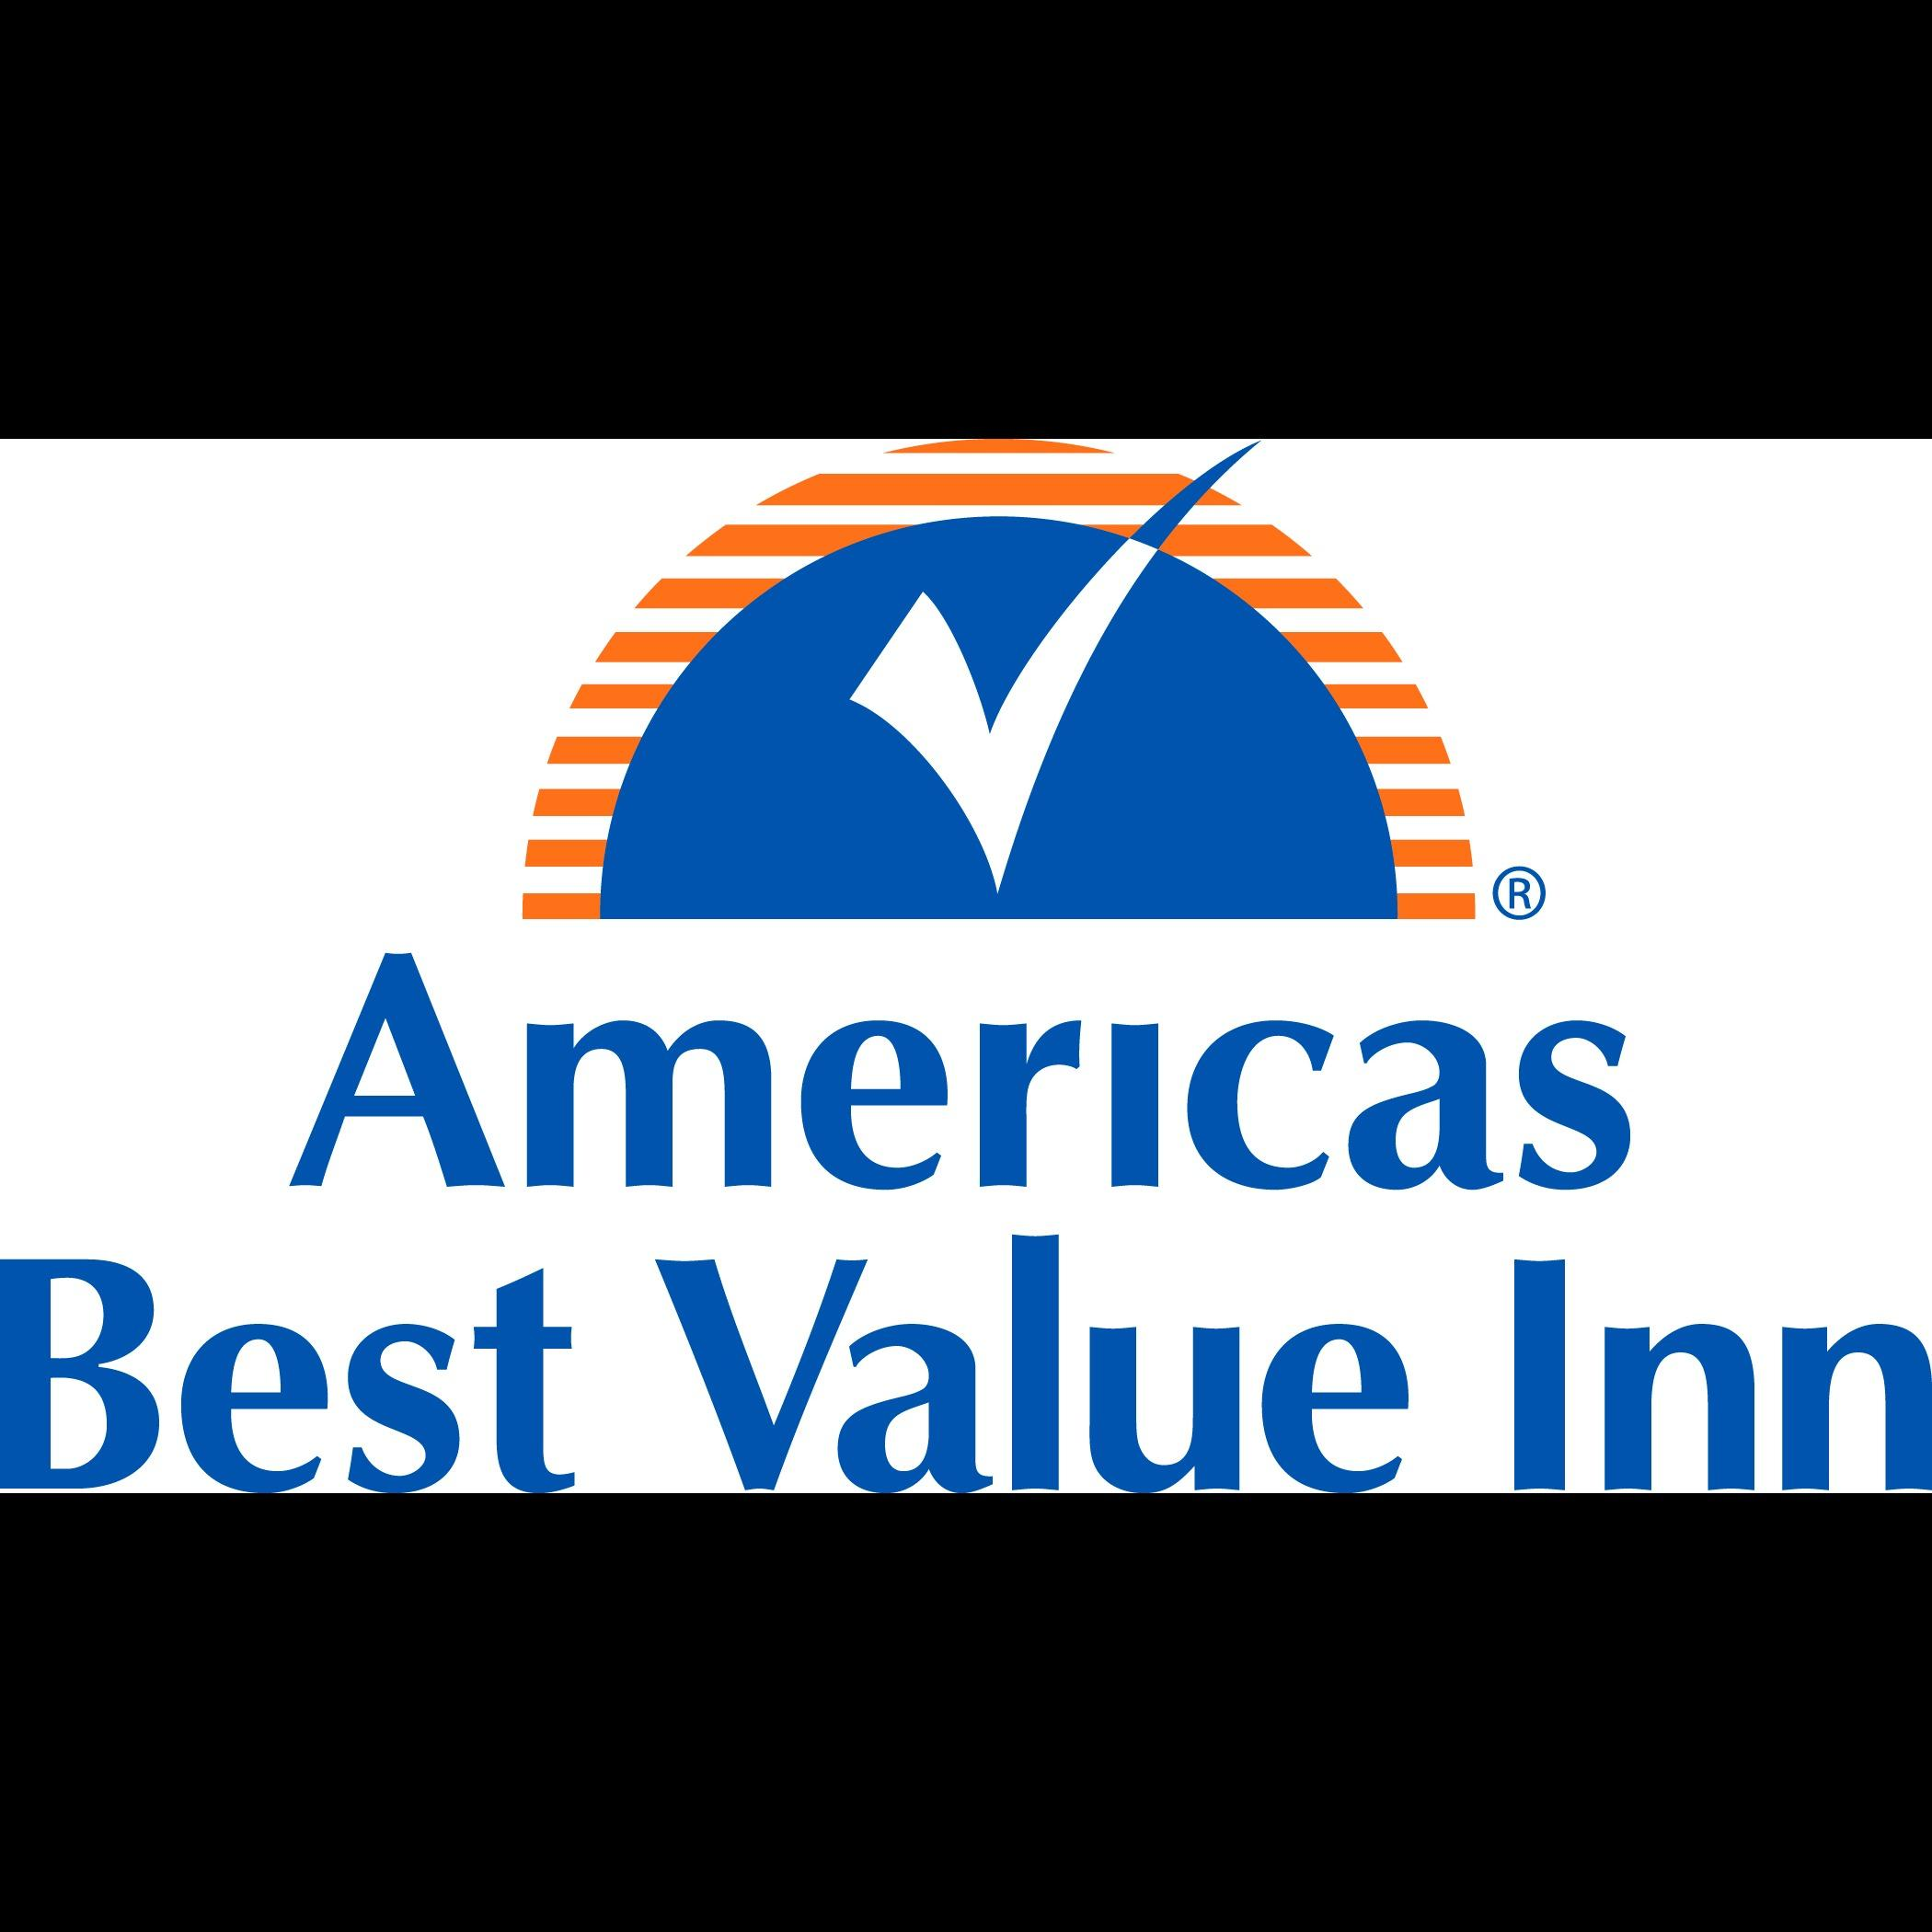 Americas Best Value Inn - Brooklyn/Linden Blvd